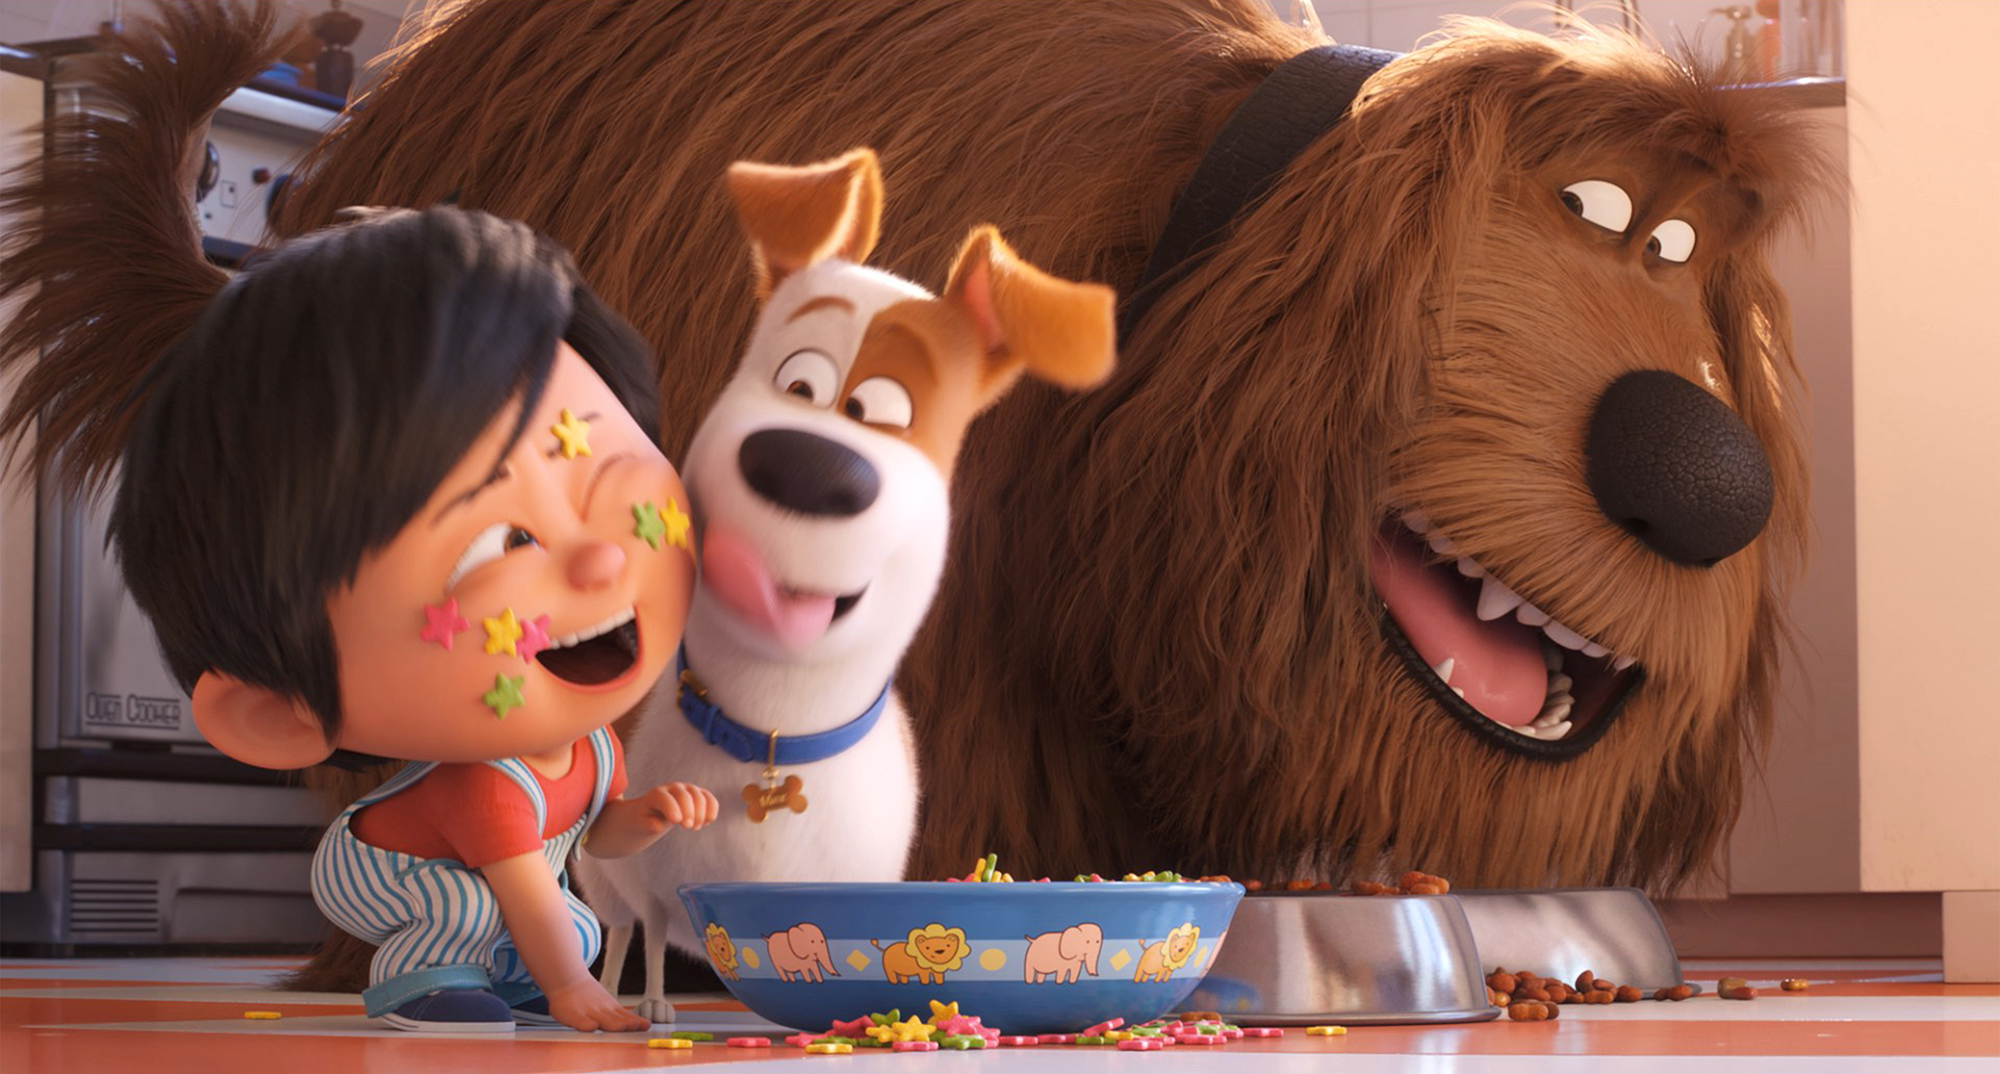 ecaaf1051 The Secret Life of Pets 2 | Now Playing